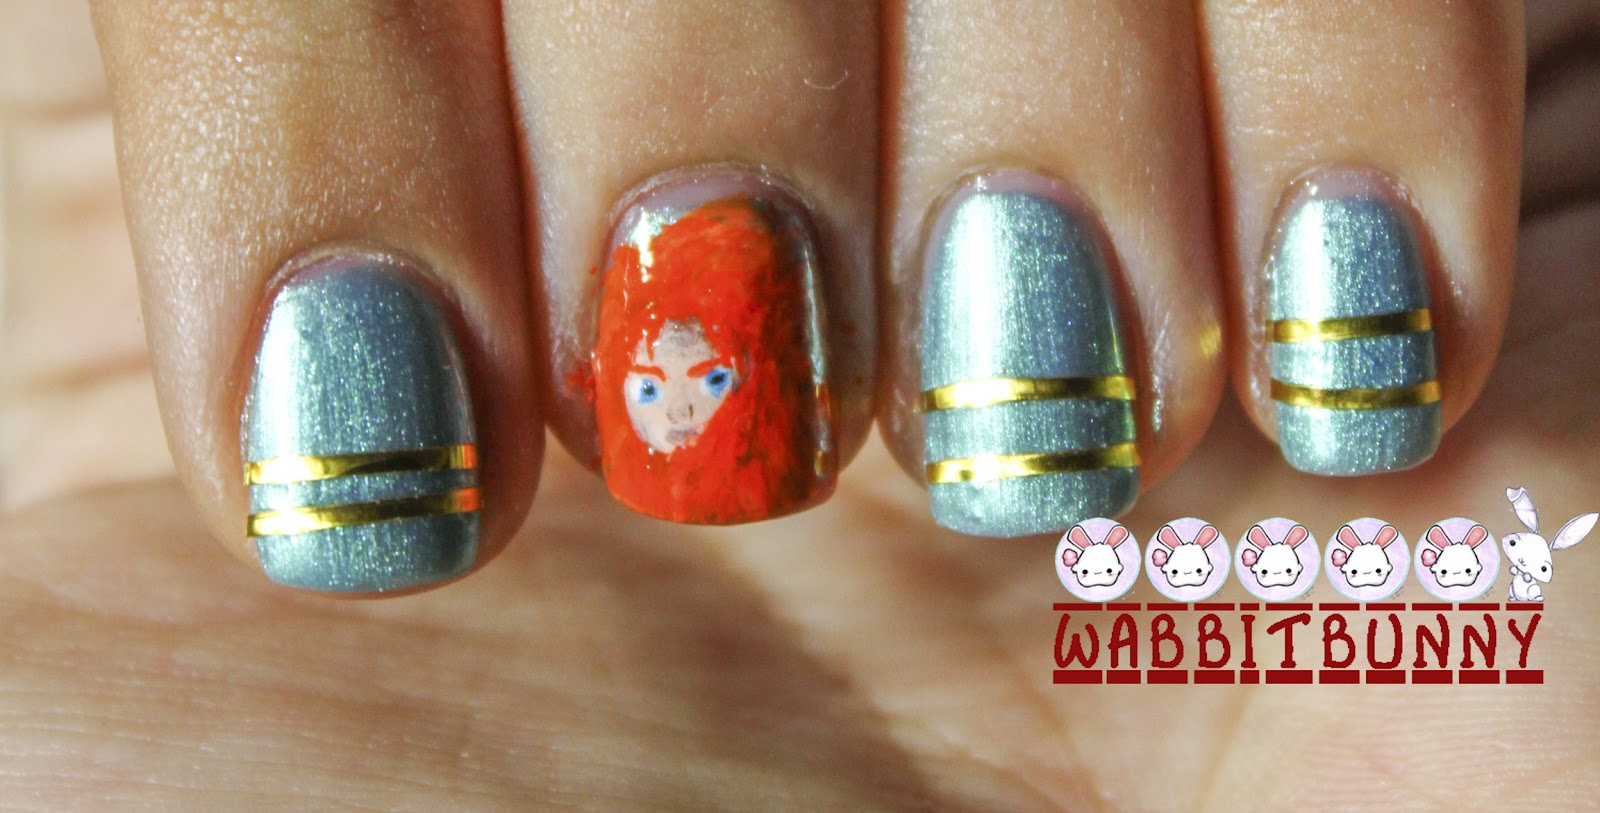 Nail art philippines ide dimage de beaut break rules not nails its all about nail polish colour and prinsesfo Images